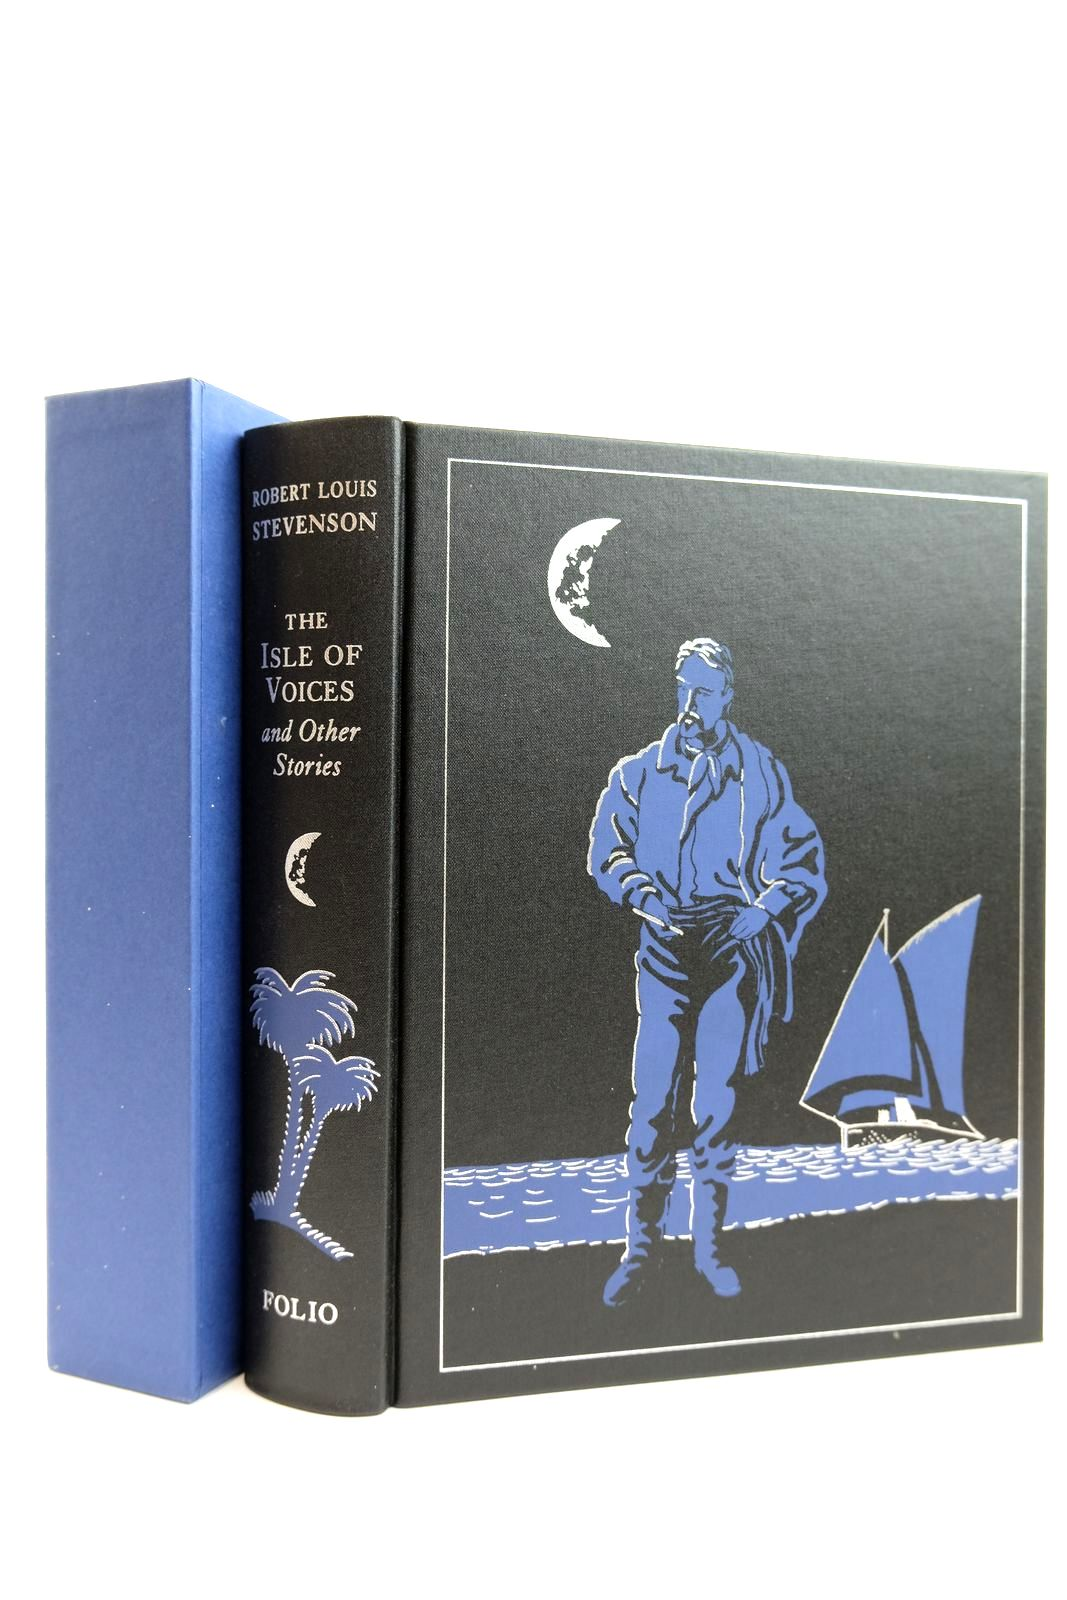 Photo of THE ISLE OF VOICES AND OTHER STORIES written by Stevenson, Robert Louis illustrated by Foreman, Michael published by Folio Society (STOCK CODE: 2131812)  for sale by Stella & Rose's Books